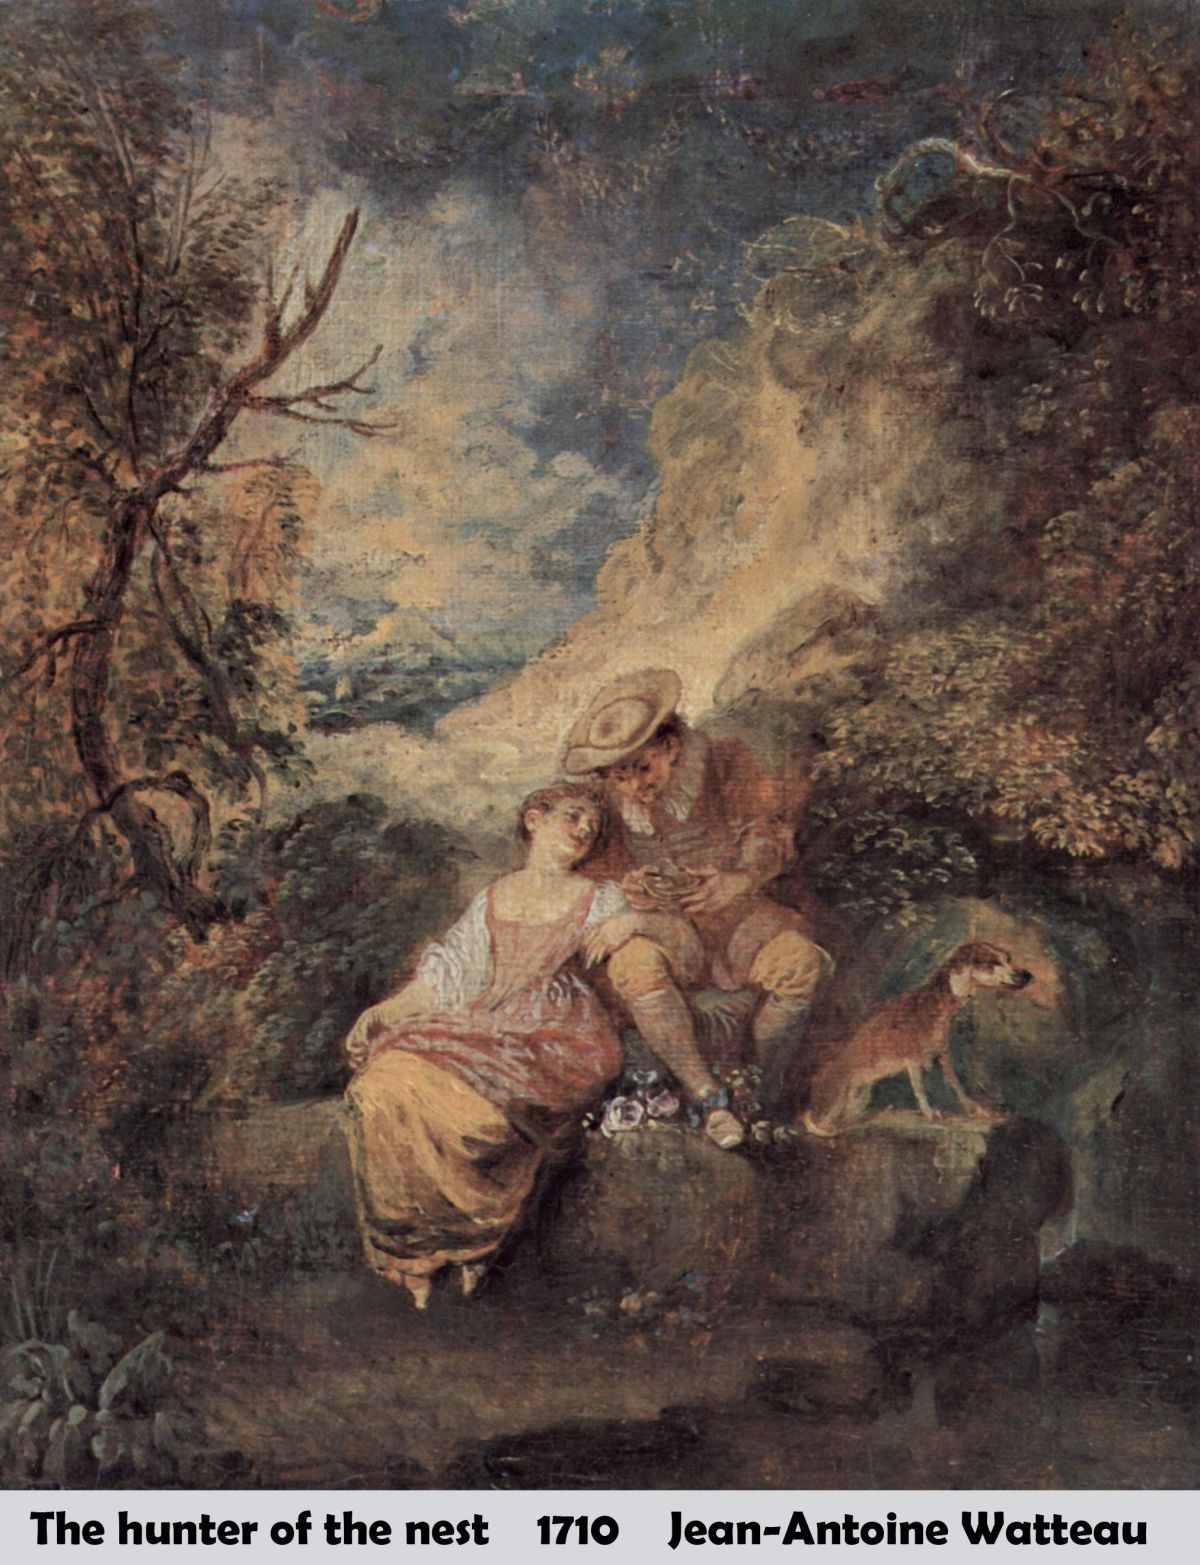 The hunter of the nest by Jean-Antoine Watteau-French Painting